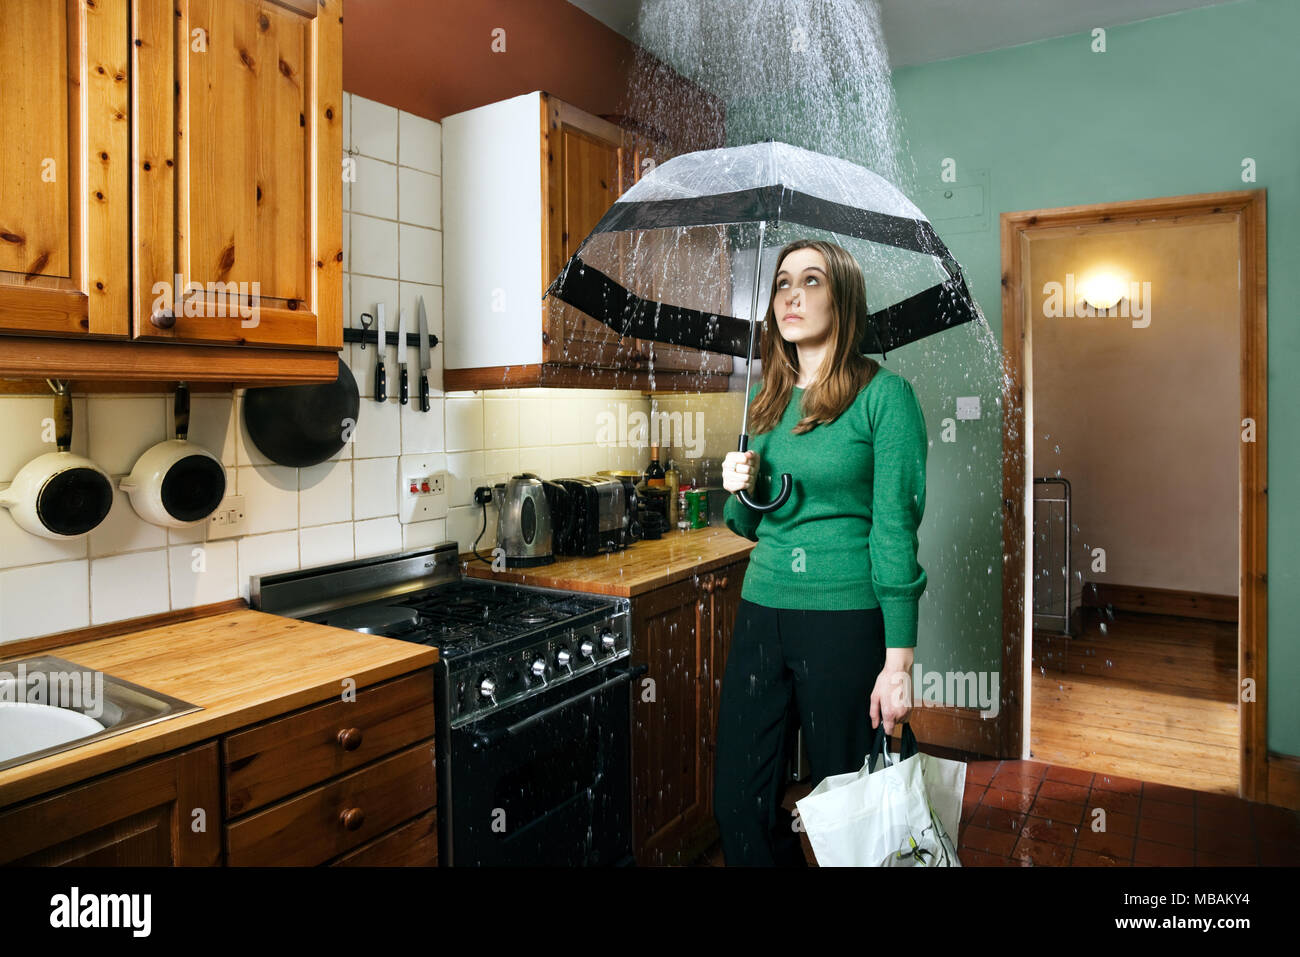 Frauen Gehören In Die Küche Englisch Damage Stockfotos And Damage Bilder Alamy